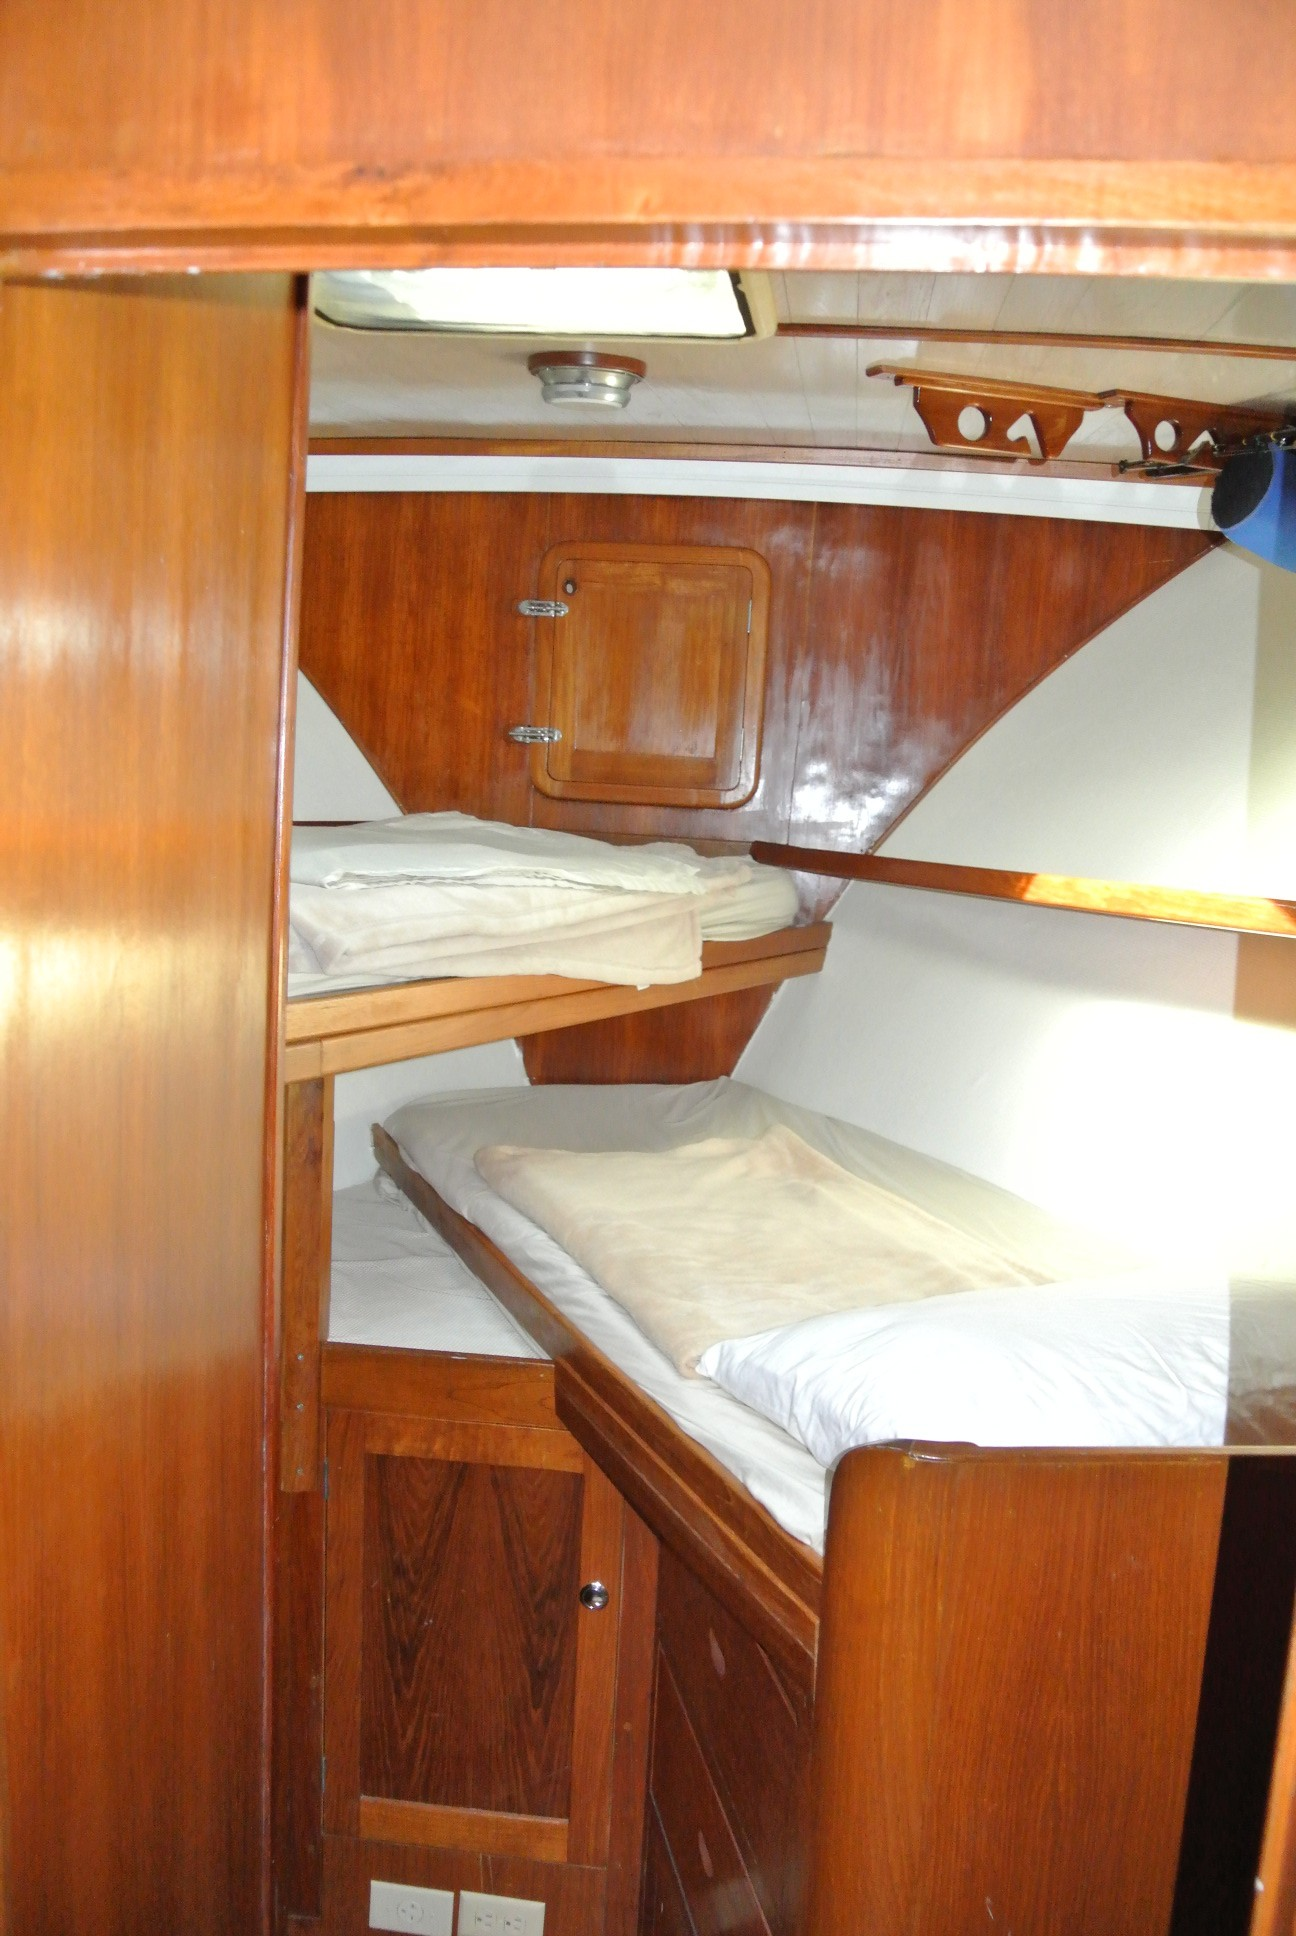 V-berth stateroom . Each Stateroom has it's own AC unit.